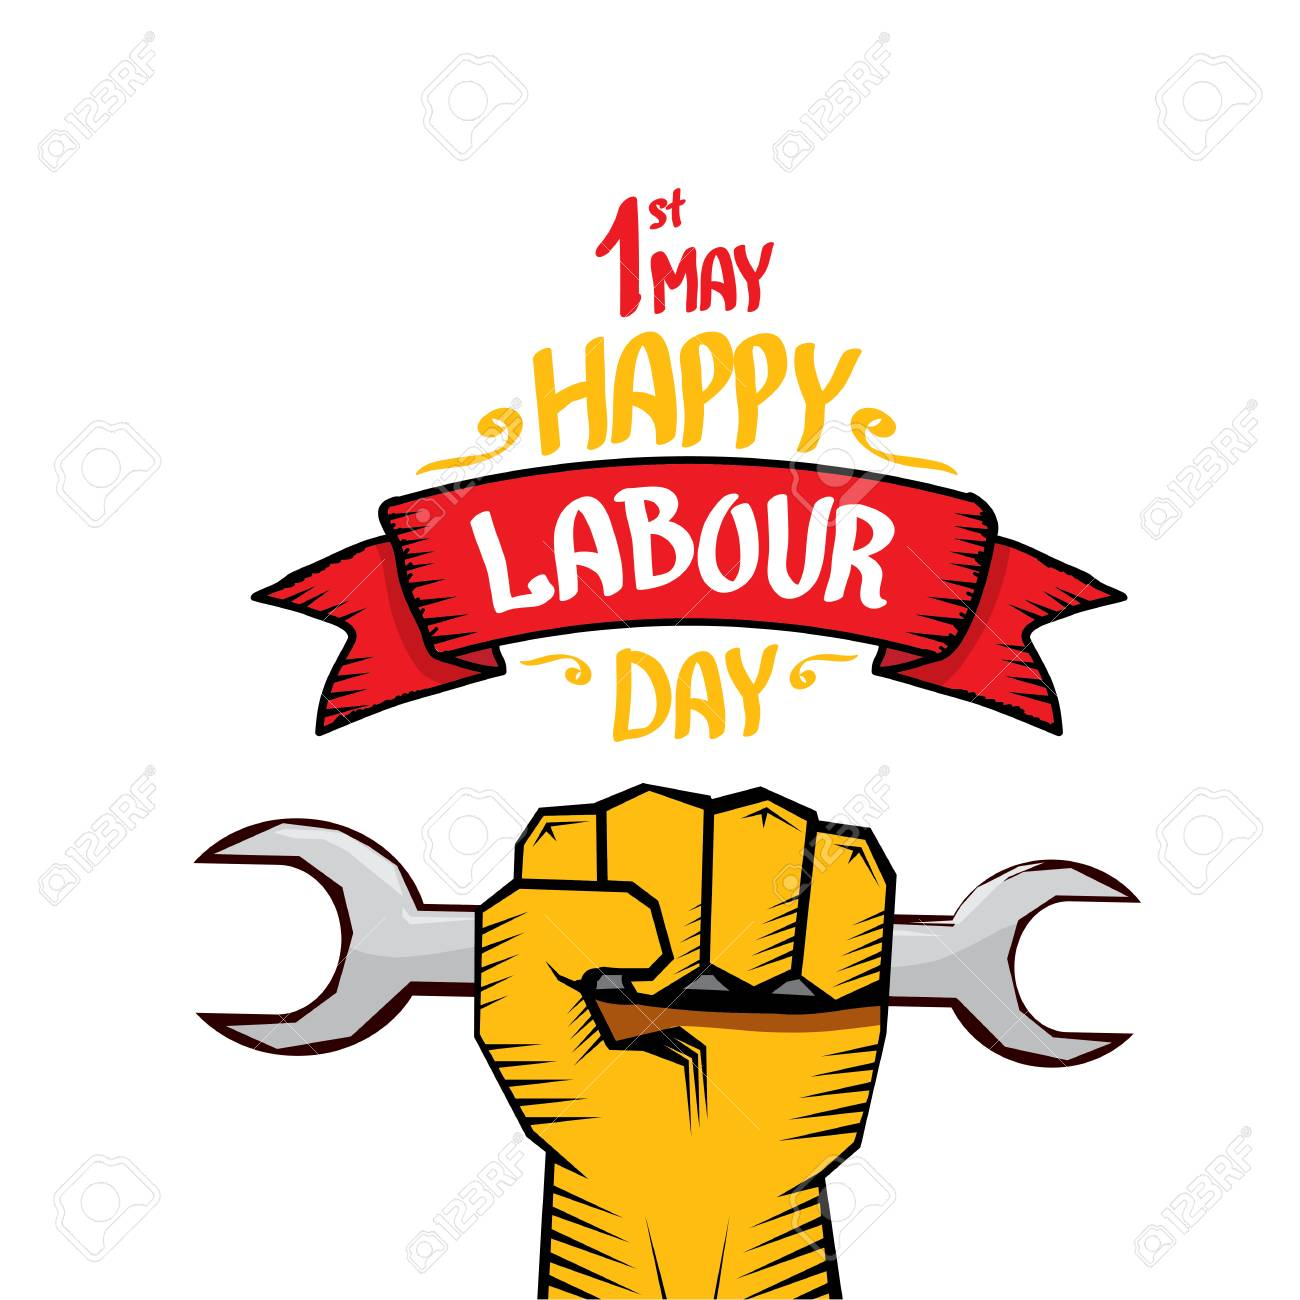 1 May Labour Day Vector Happy Labour Day Poster Or Workers